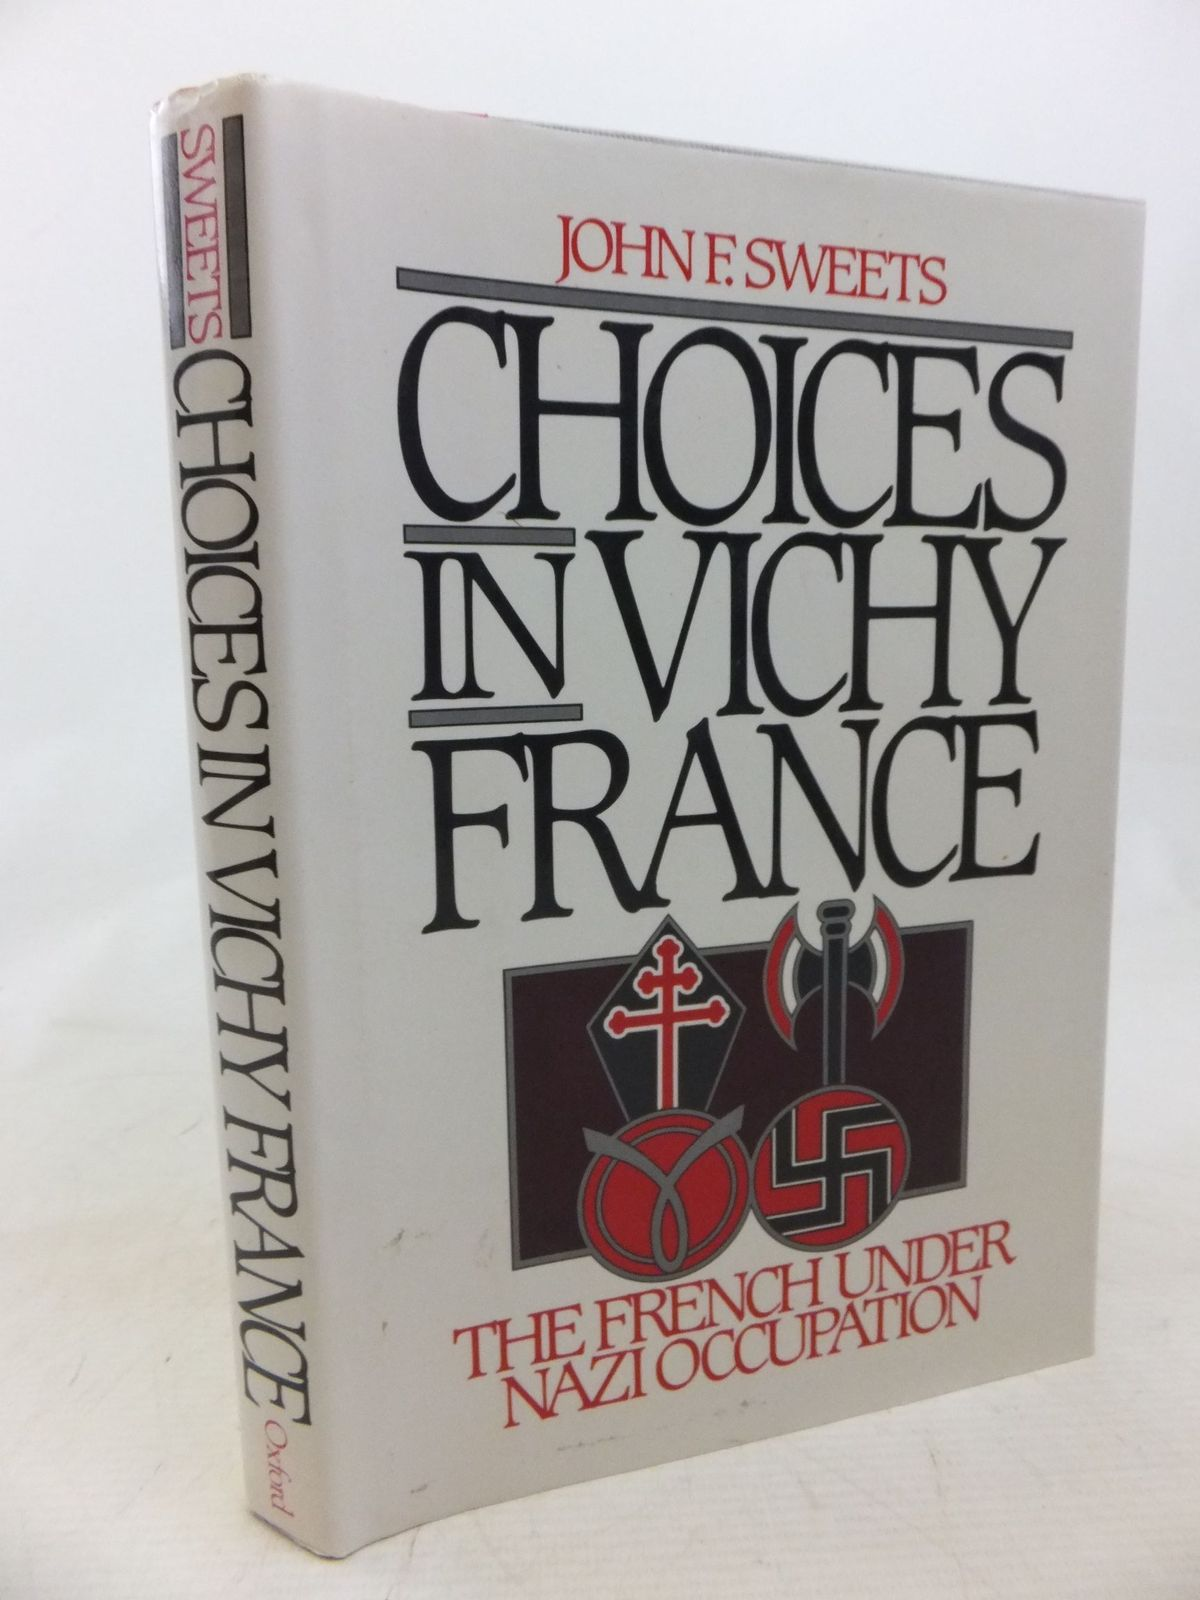 Photo of CHOICES IN VICHY FRANCE THE FRENCH UNDER NAZI OCCUPATION written by Sweets, John F. published by Oxford University Press (STOCK CODE: 2115247)  for sale by Stella & Rose's Books